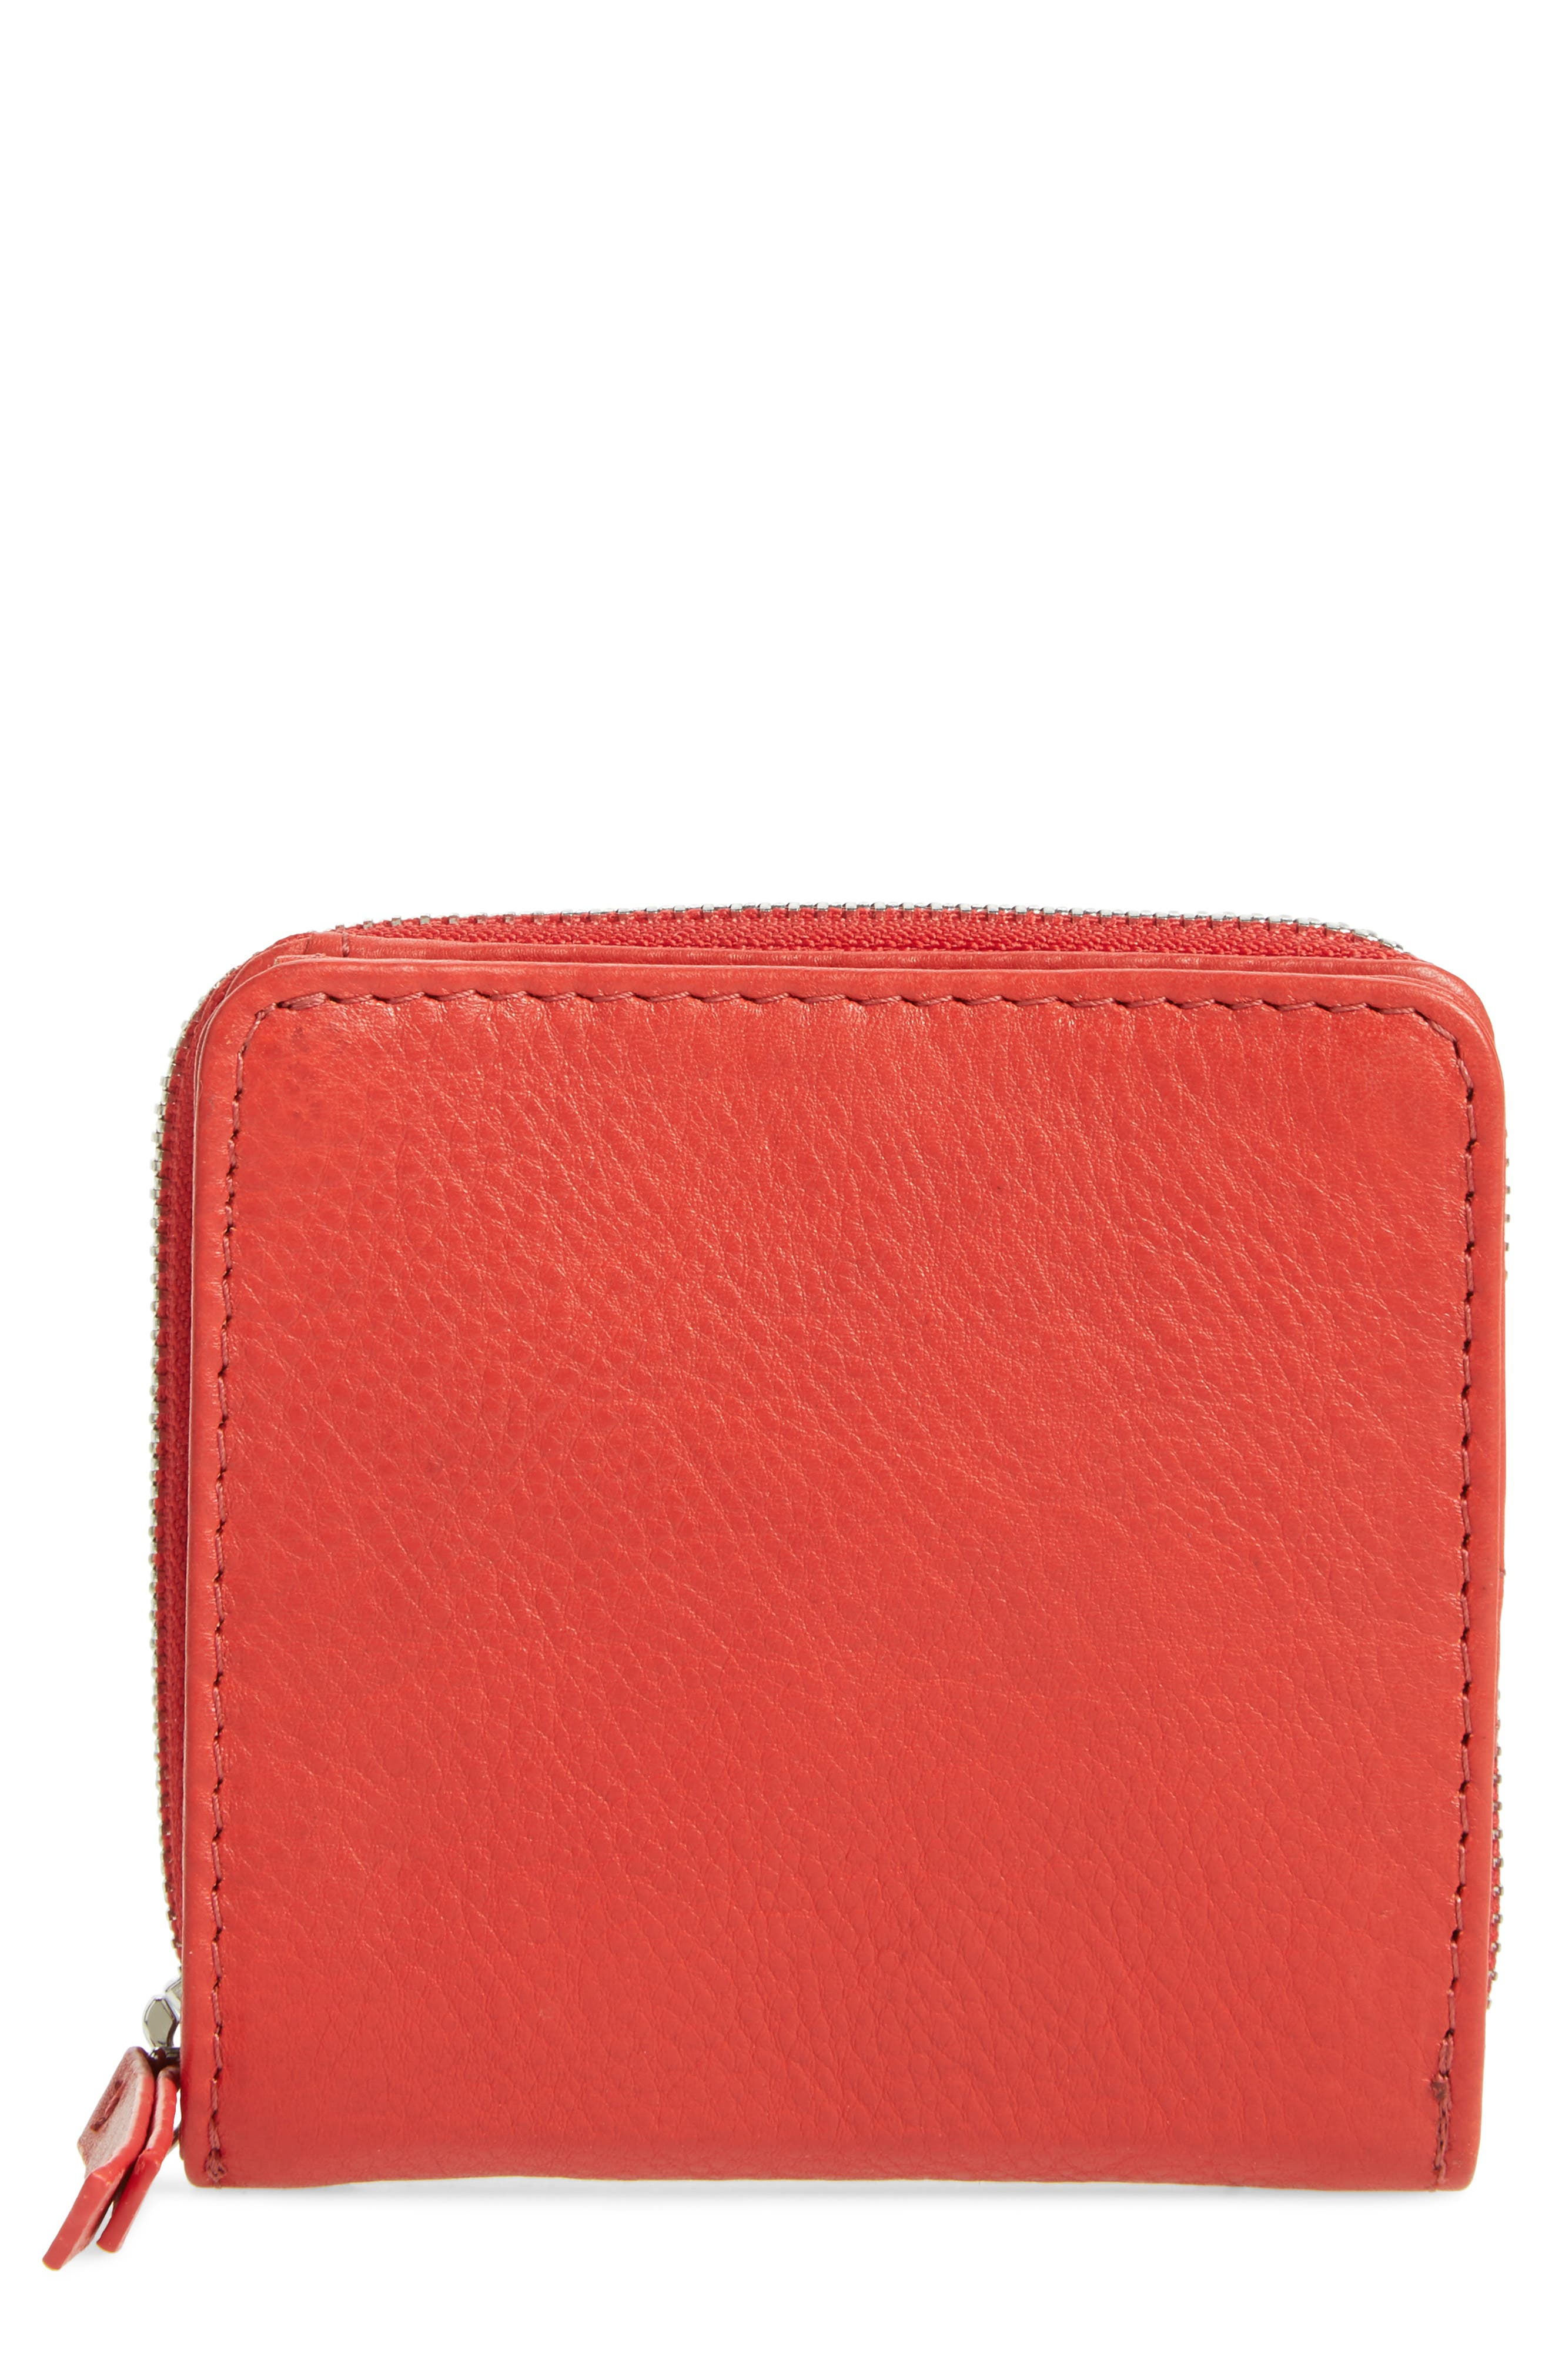 Leather Zip Around Wallet,                         Main,                         color, Red